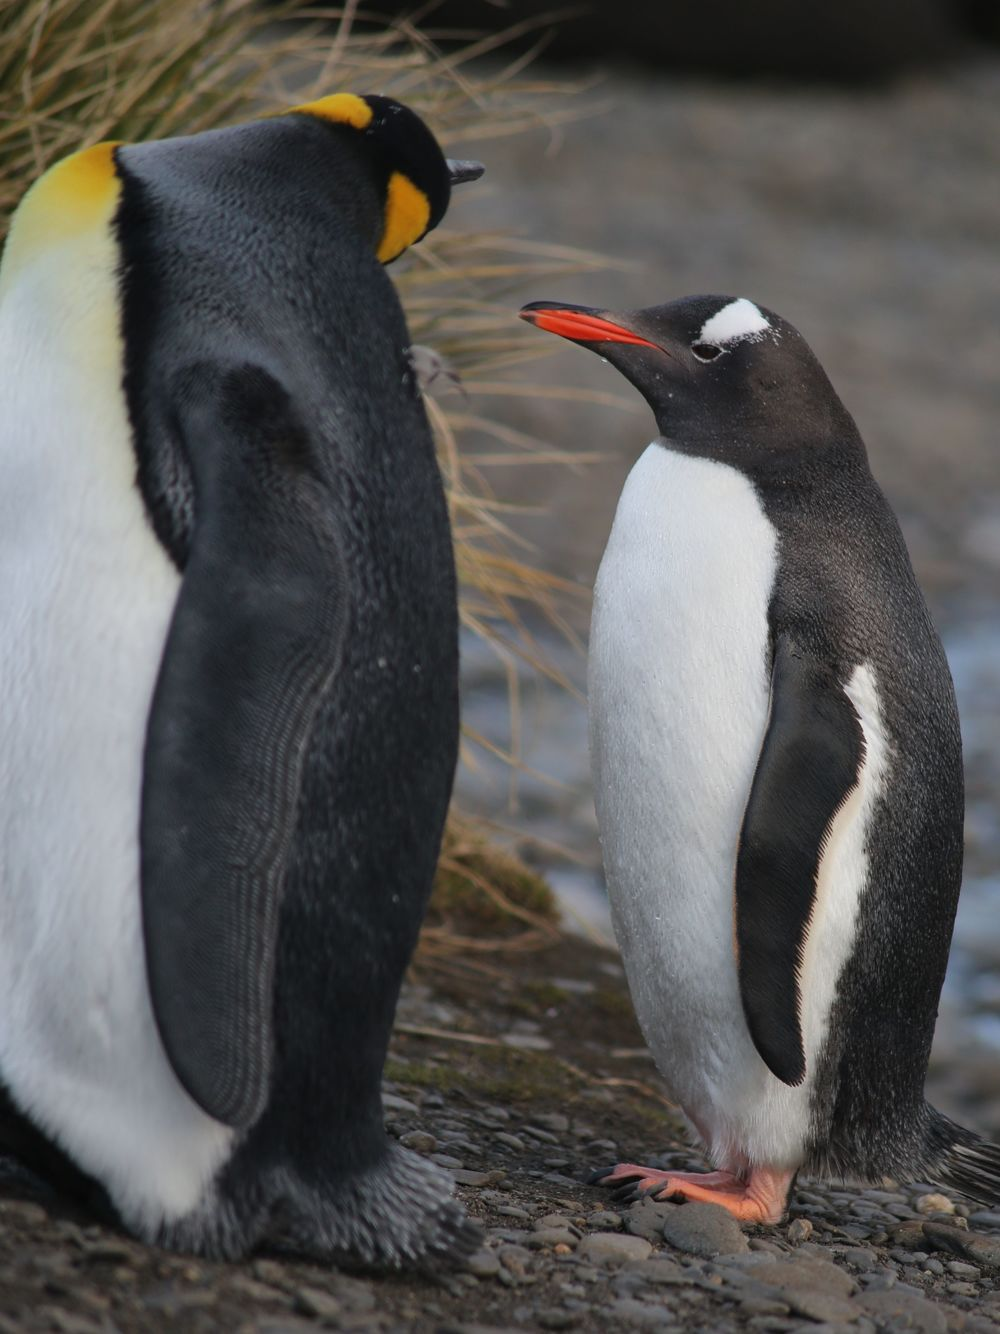 ...and met up with a king penguin cousin.